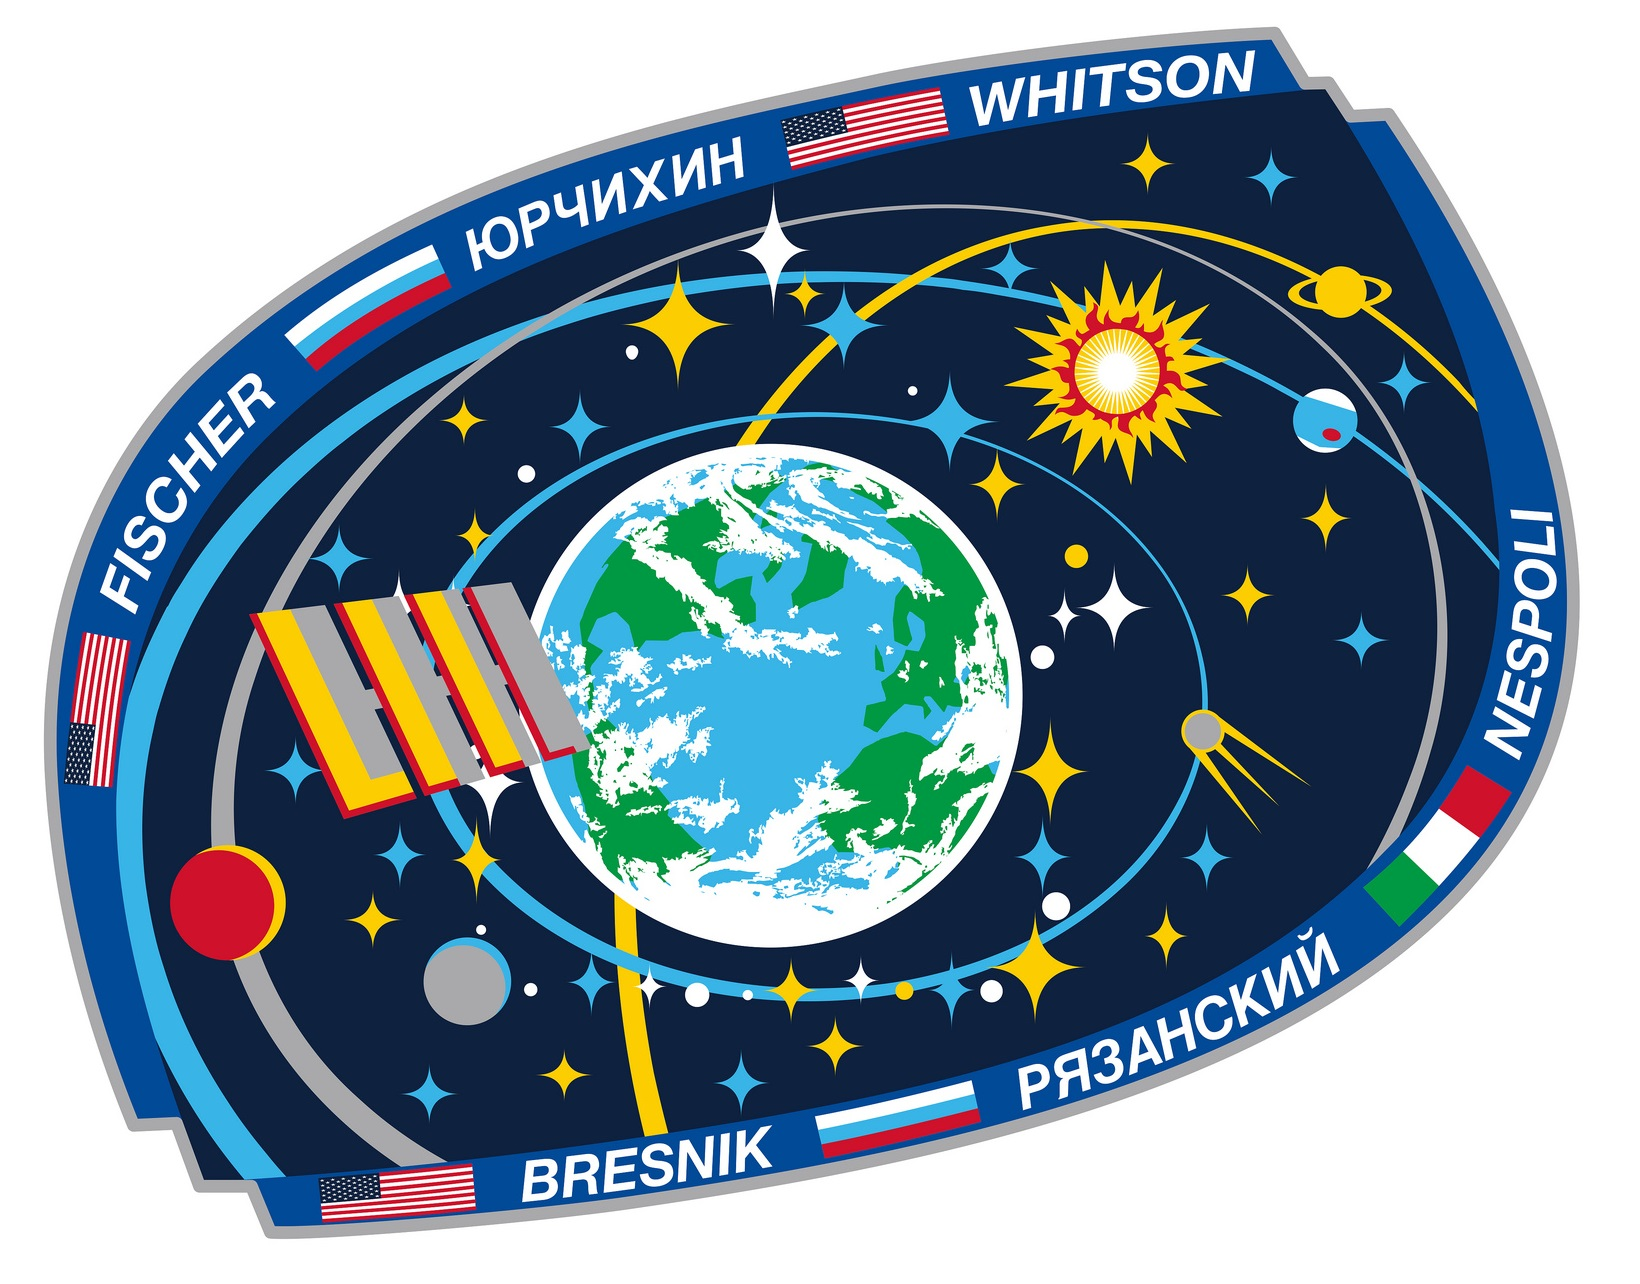 ISS Expedition 52 Crew Patch - Credit: NASA/Roscosmos